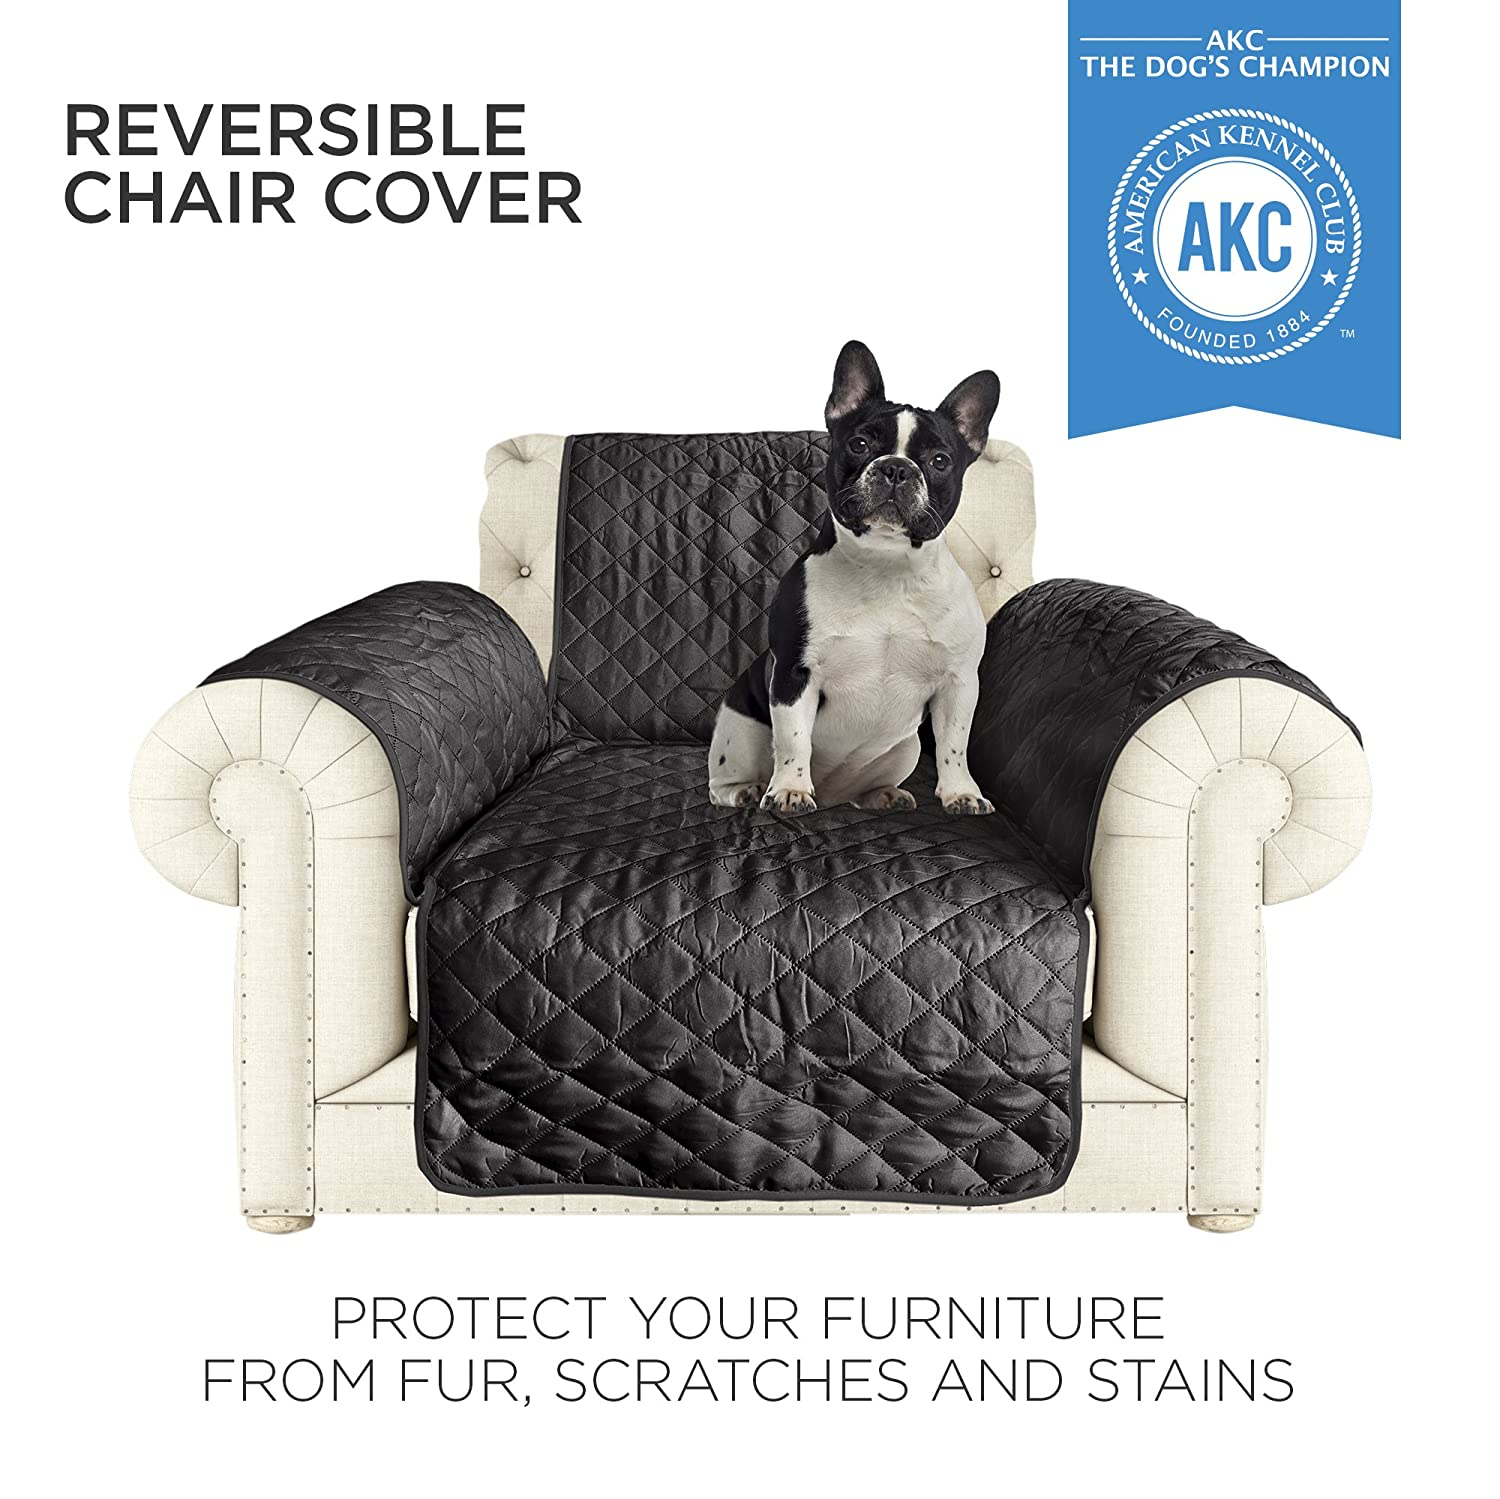 Amazon AKC Quilted Pet Chair Cover in Black Grey Home & Kitchen